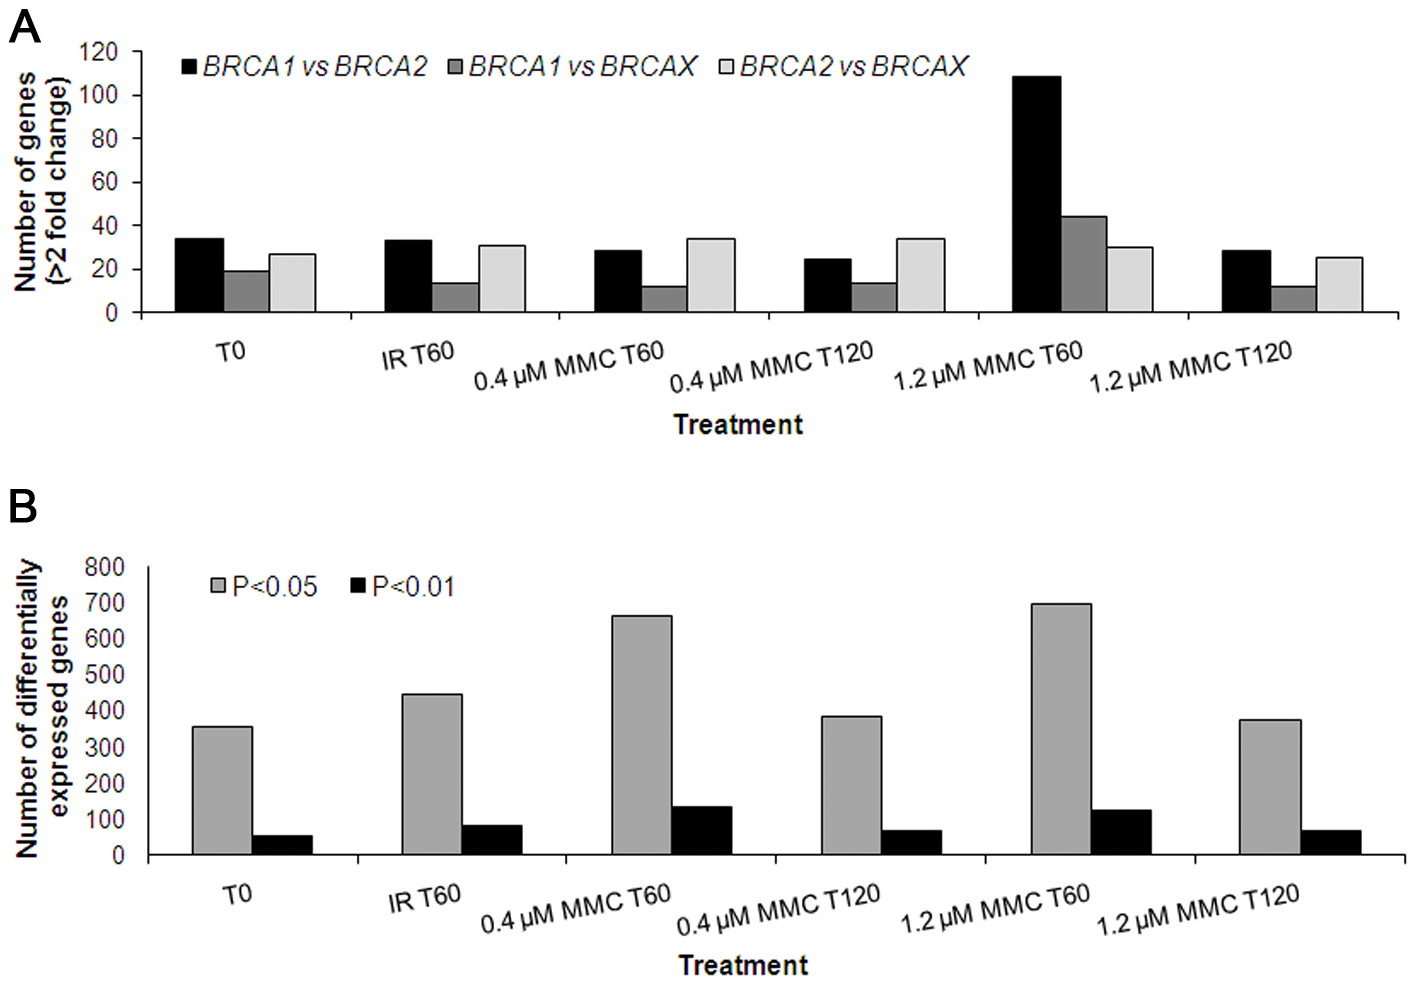 Number of genes differentially expressed among <i>BRCA1</i>, <i>BRCA2</i>, and BRCAX.